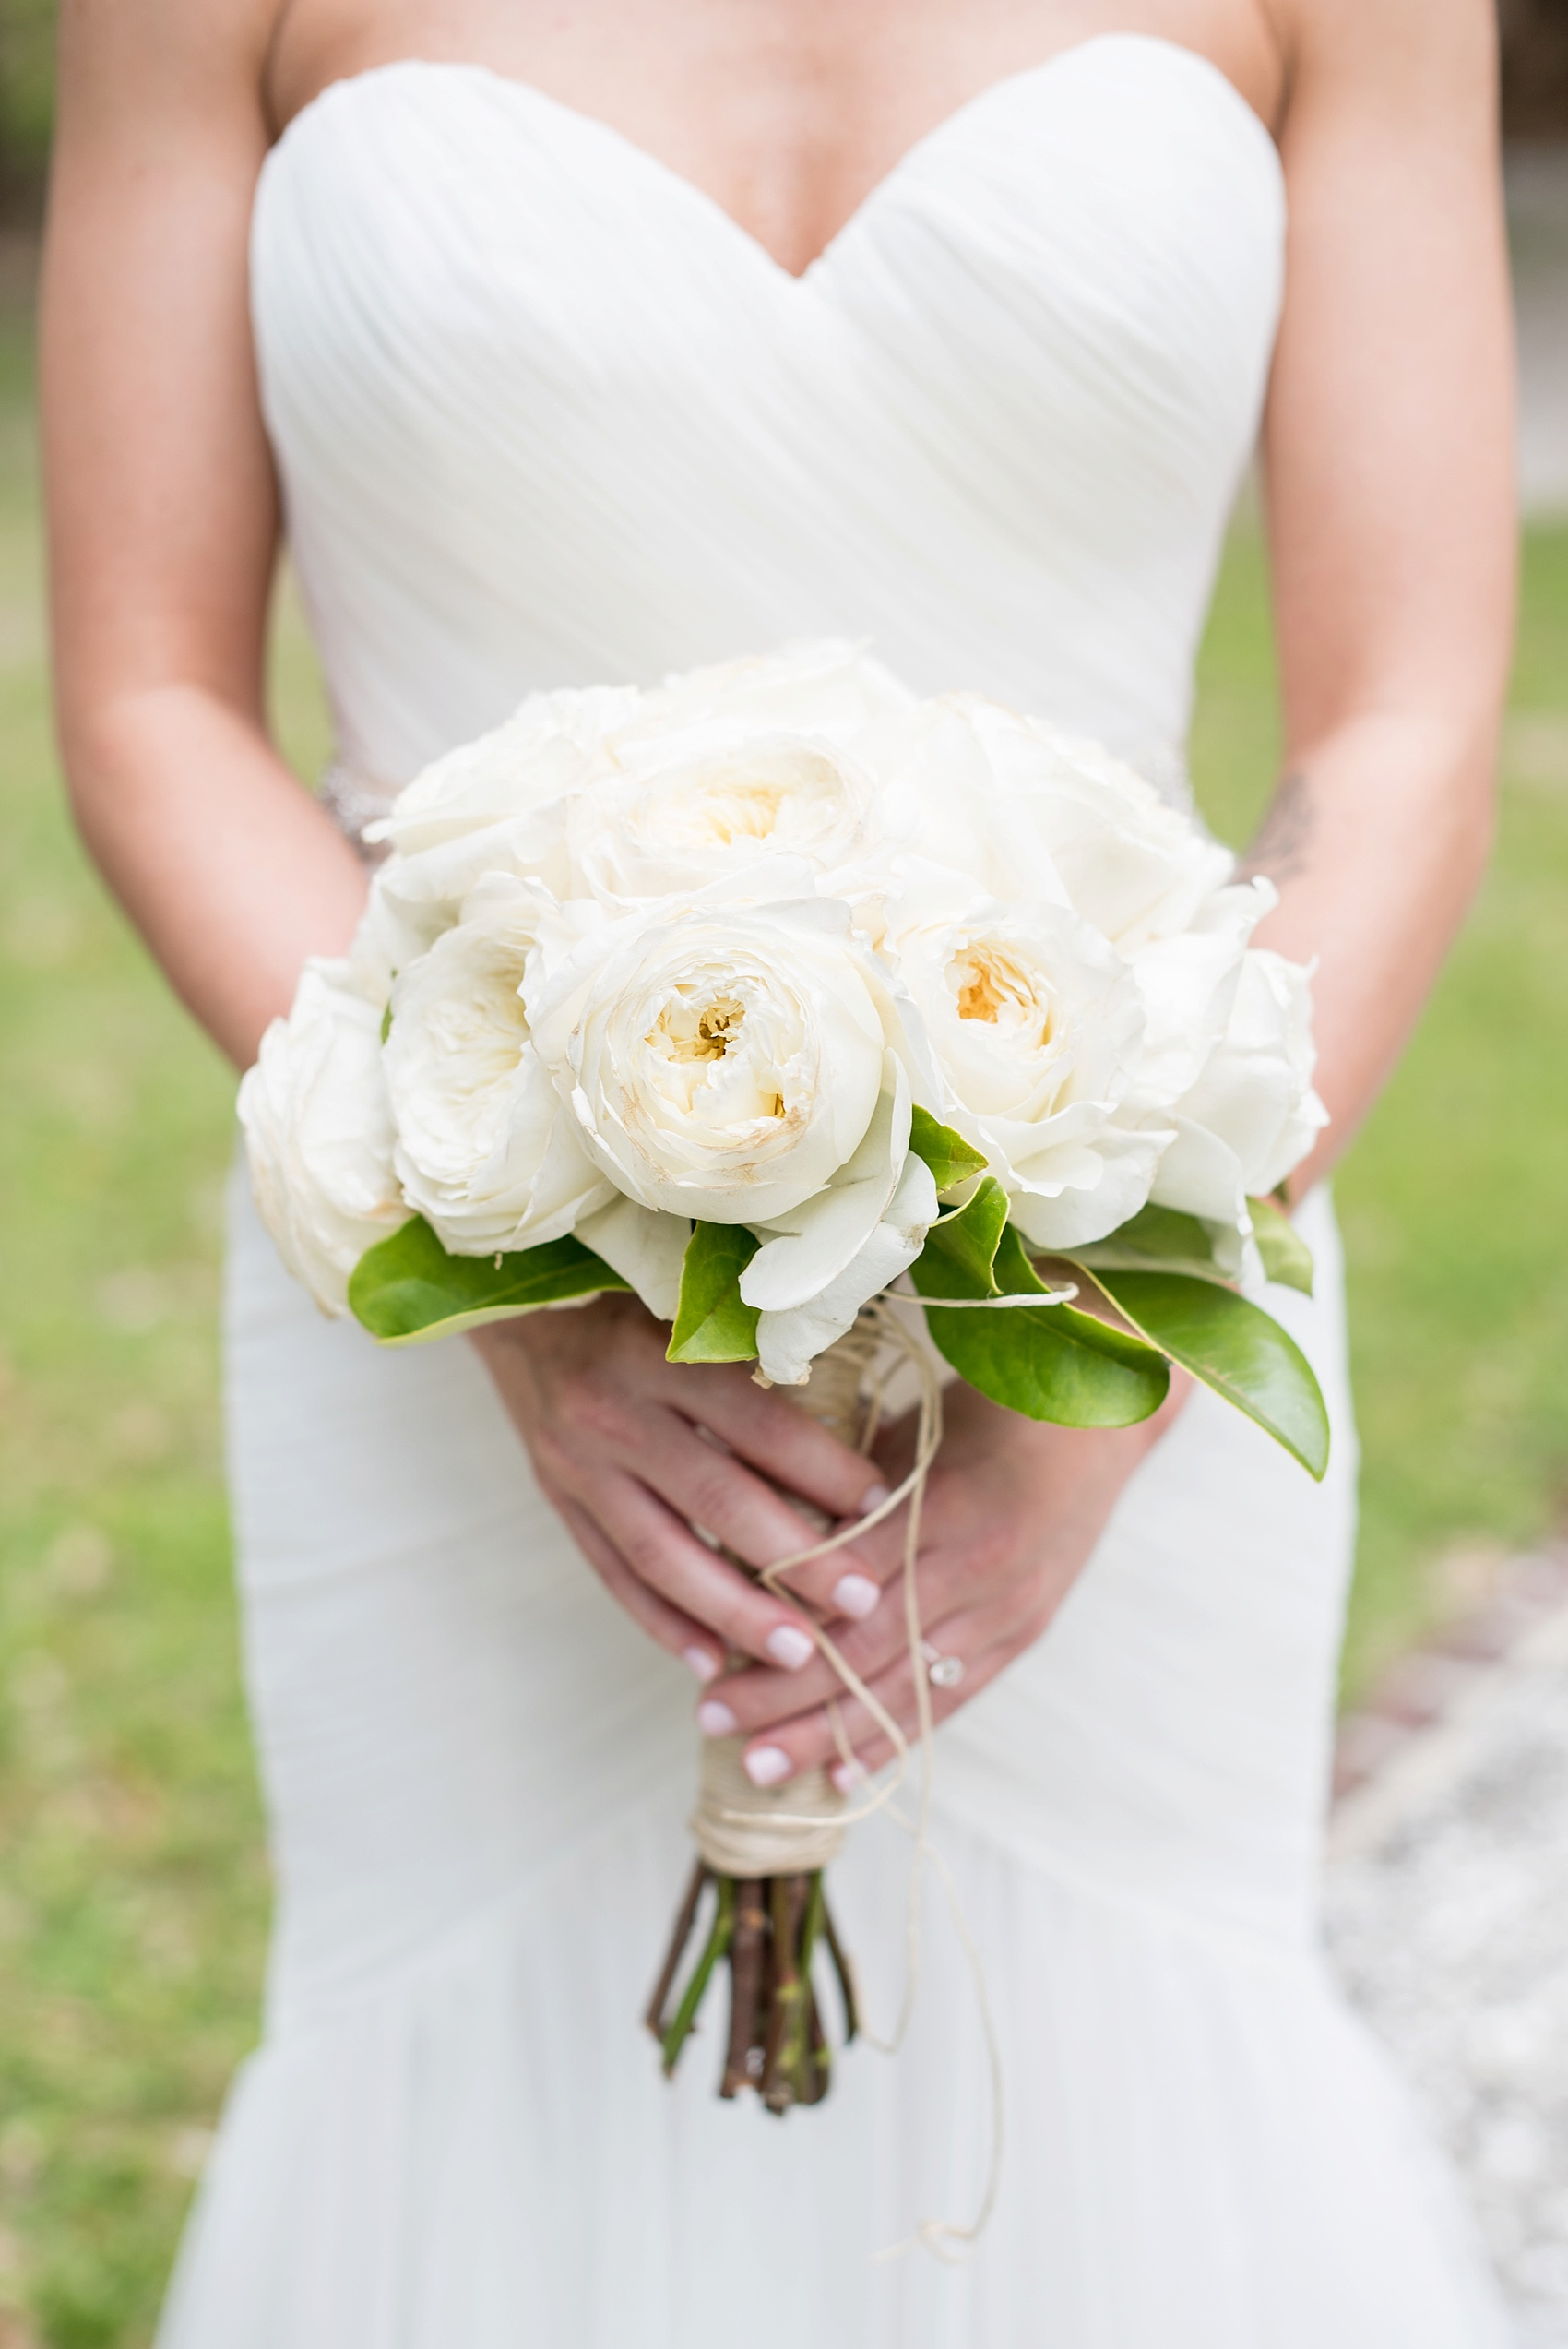 White rose bouquet with jute twine wrapped around its stems for a southern wedding. Photo by Mikkel Paige in Hilton Head, Haig Point, South Carolina.